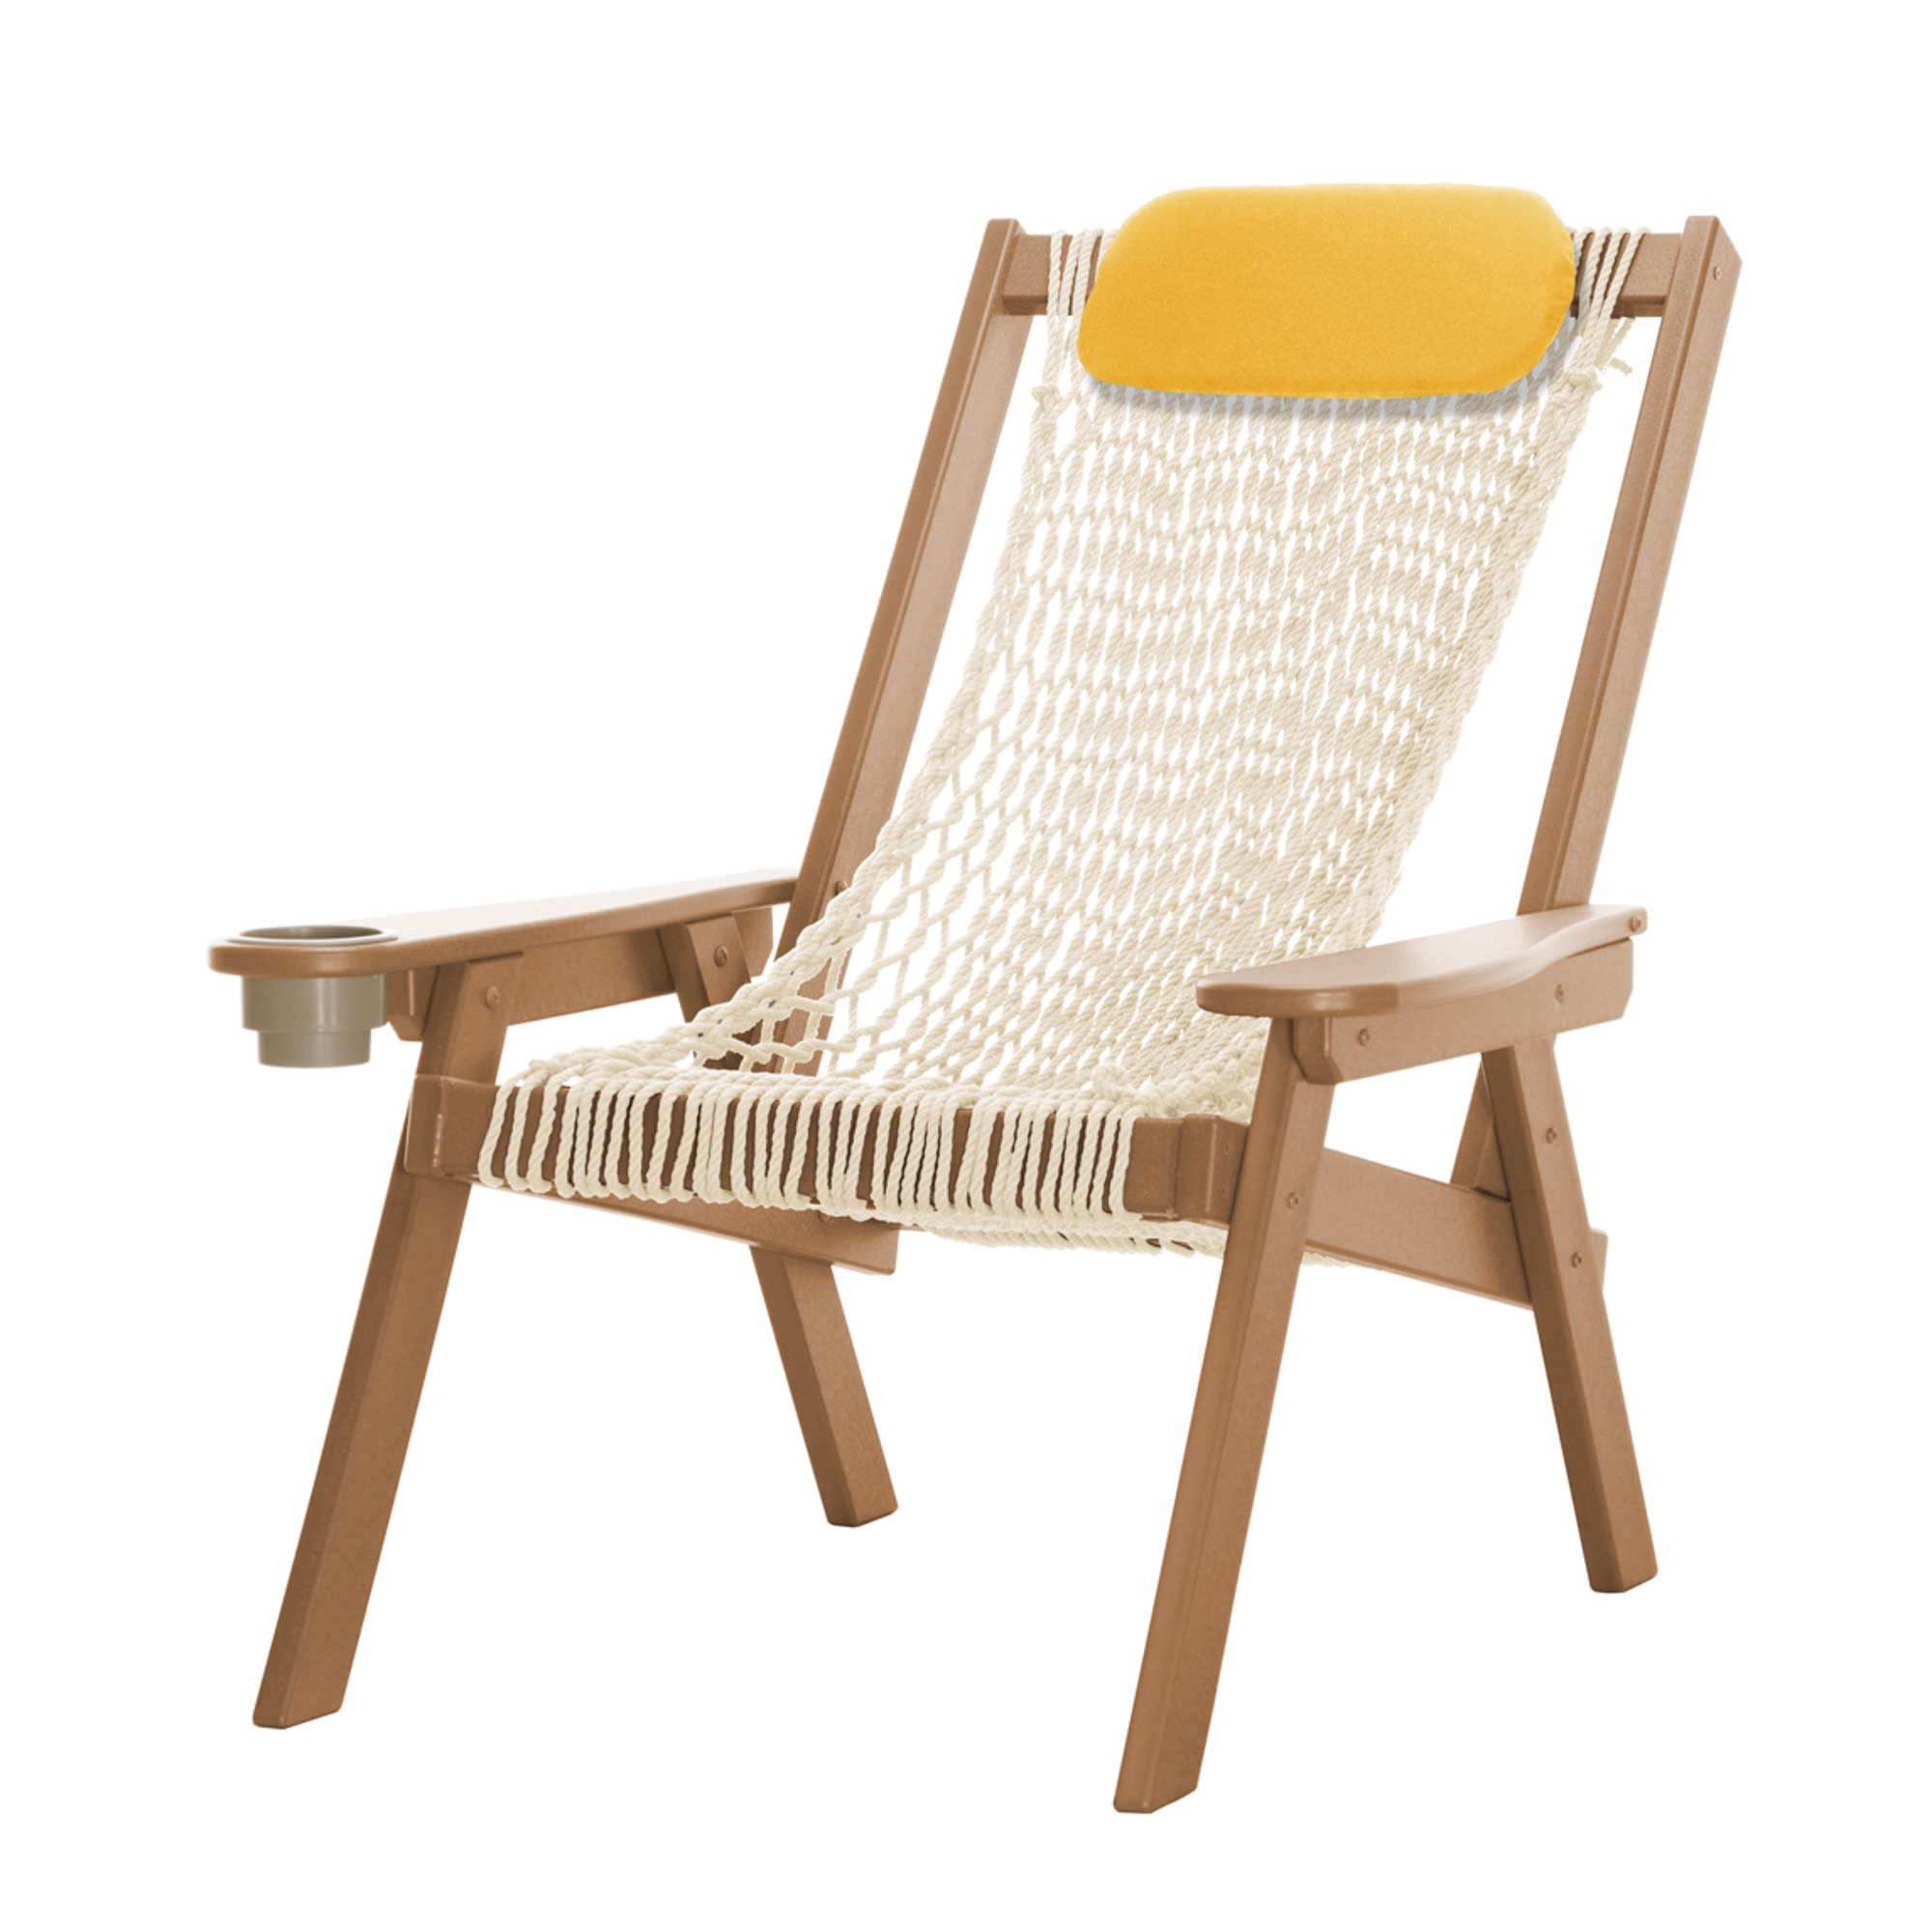 Island Chair Coastal Cedar Durawood Rope Chair Pawleys Island Hammocks